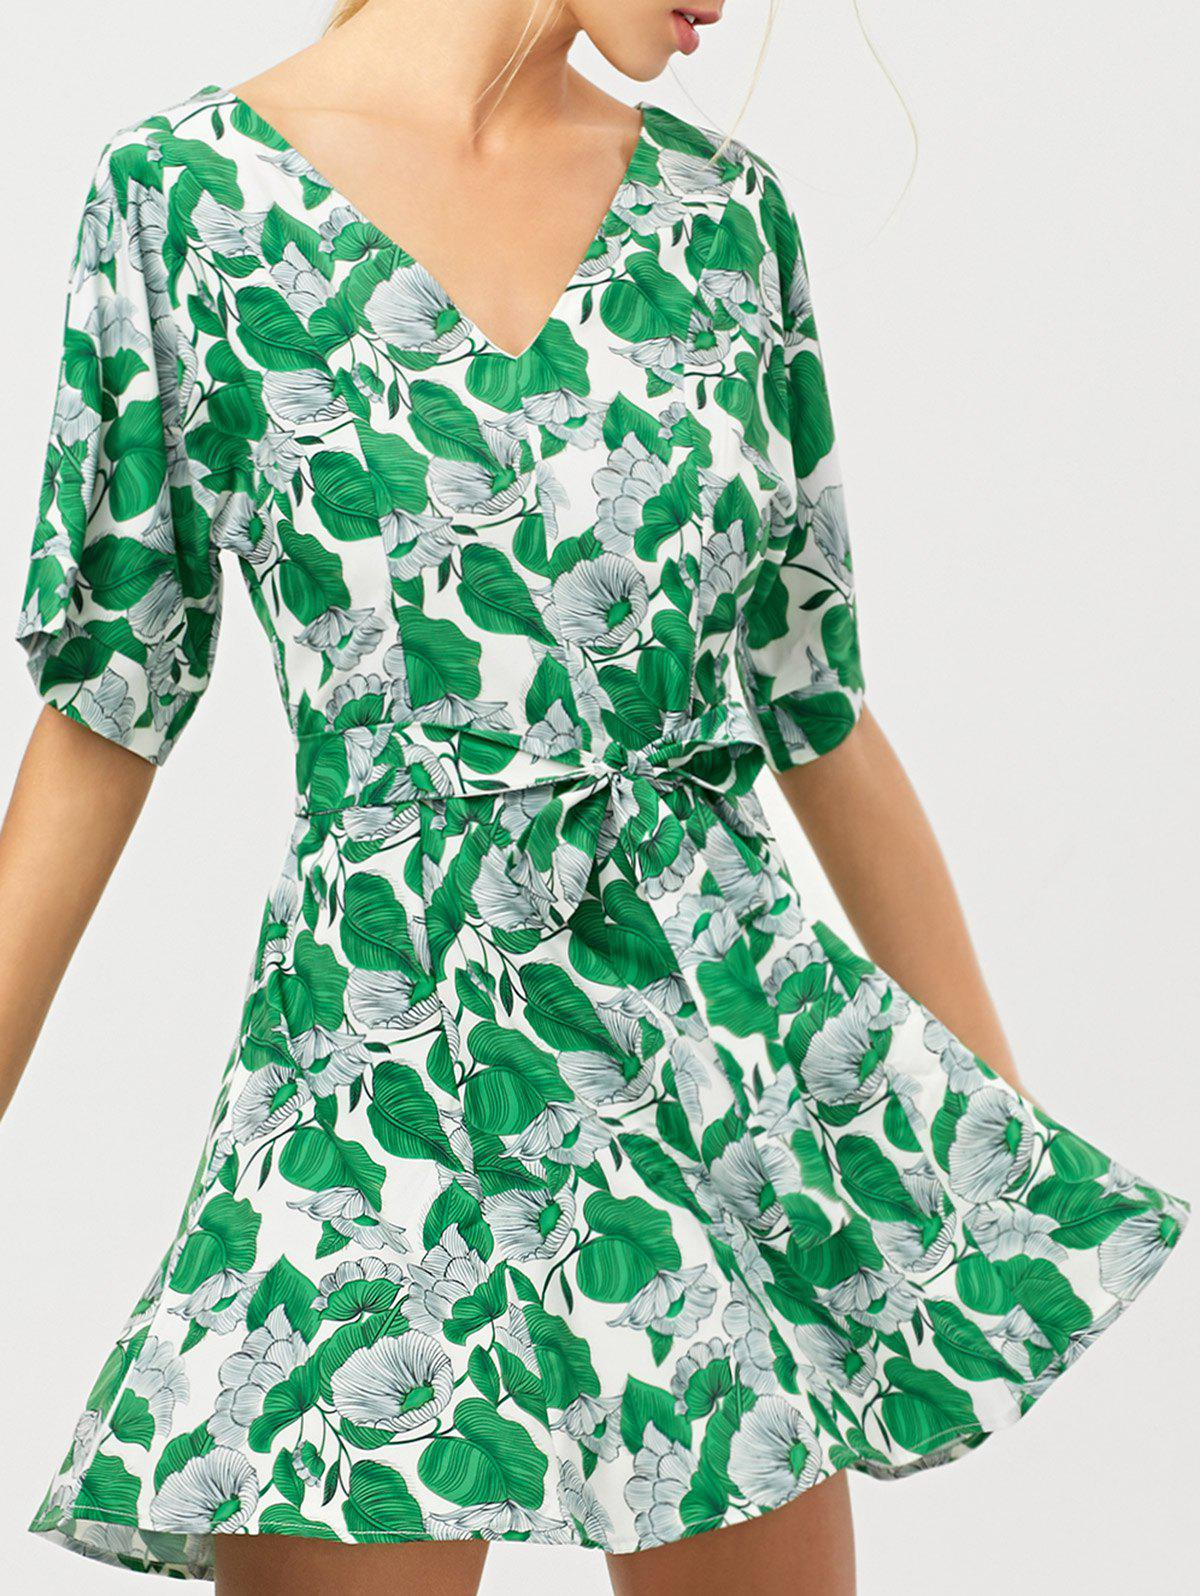 Belted Leaves Print A-Line Dress - GREEN S